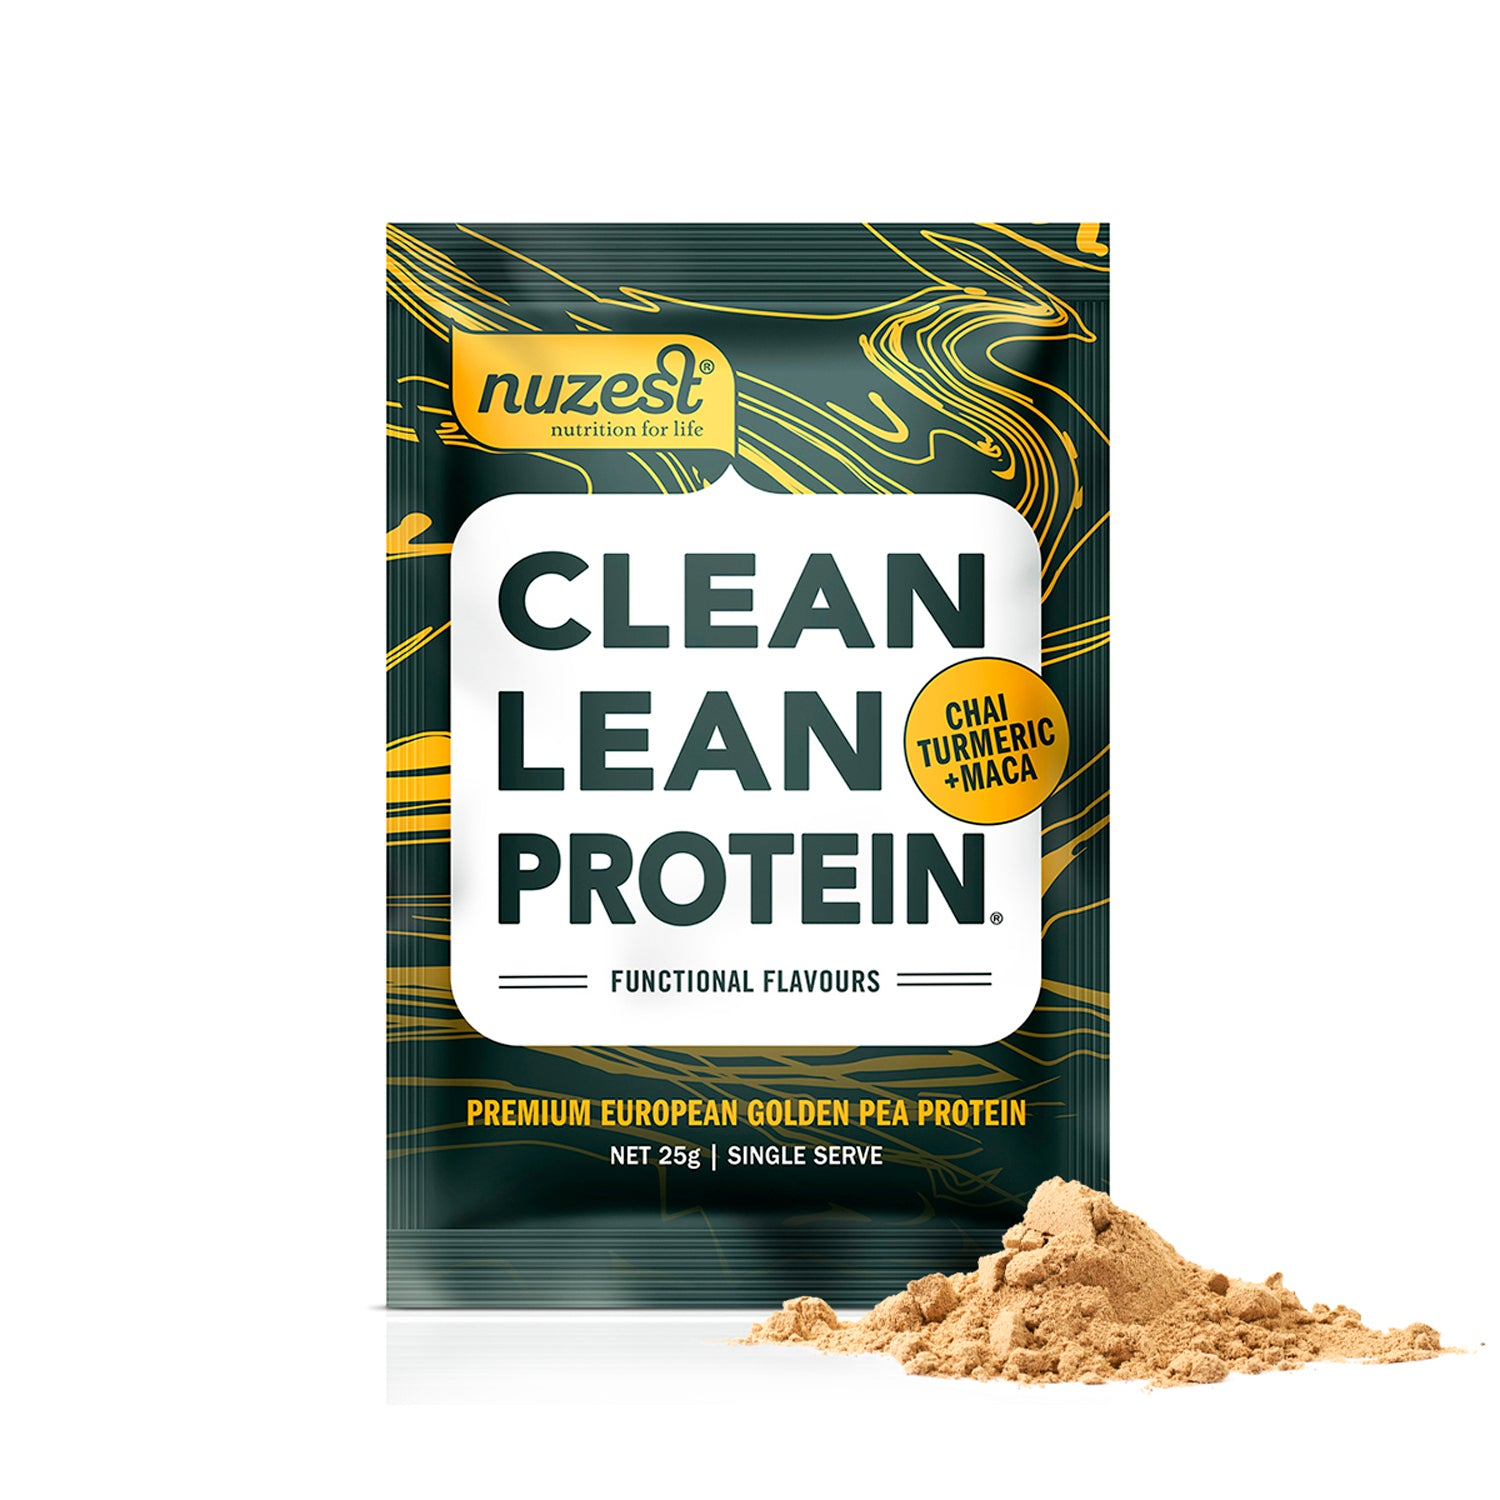 Clean Lean Protein Functional Sachets 10 Packs